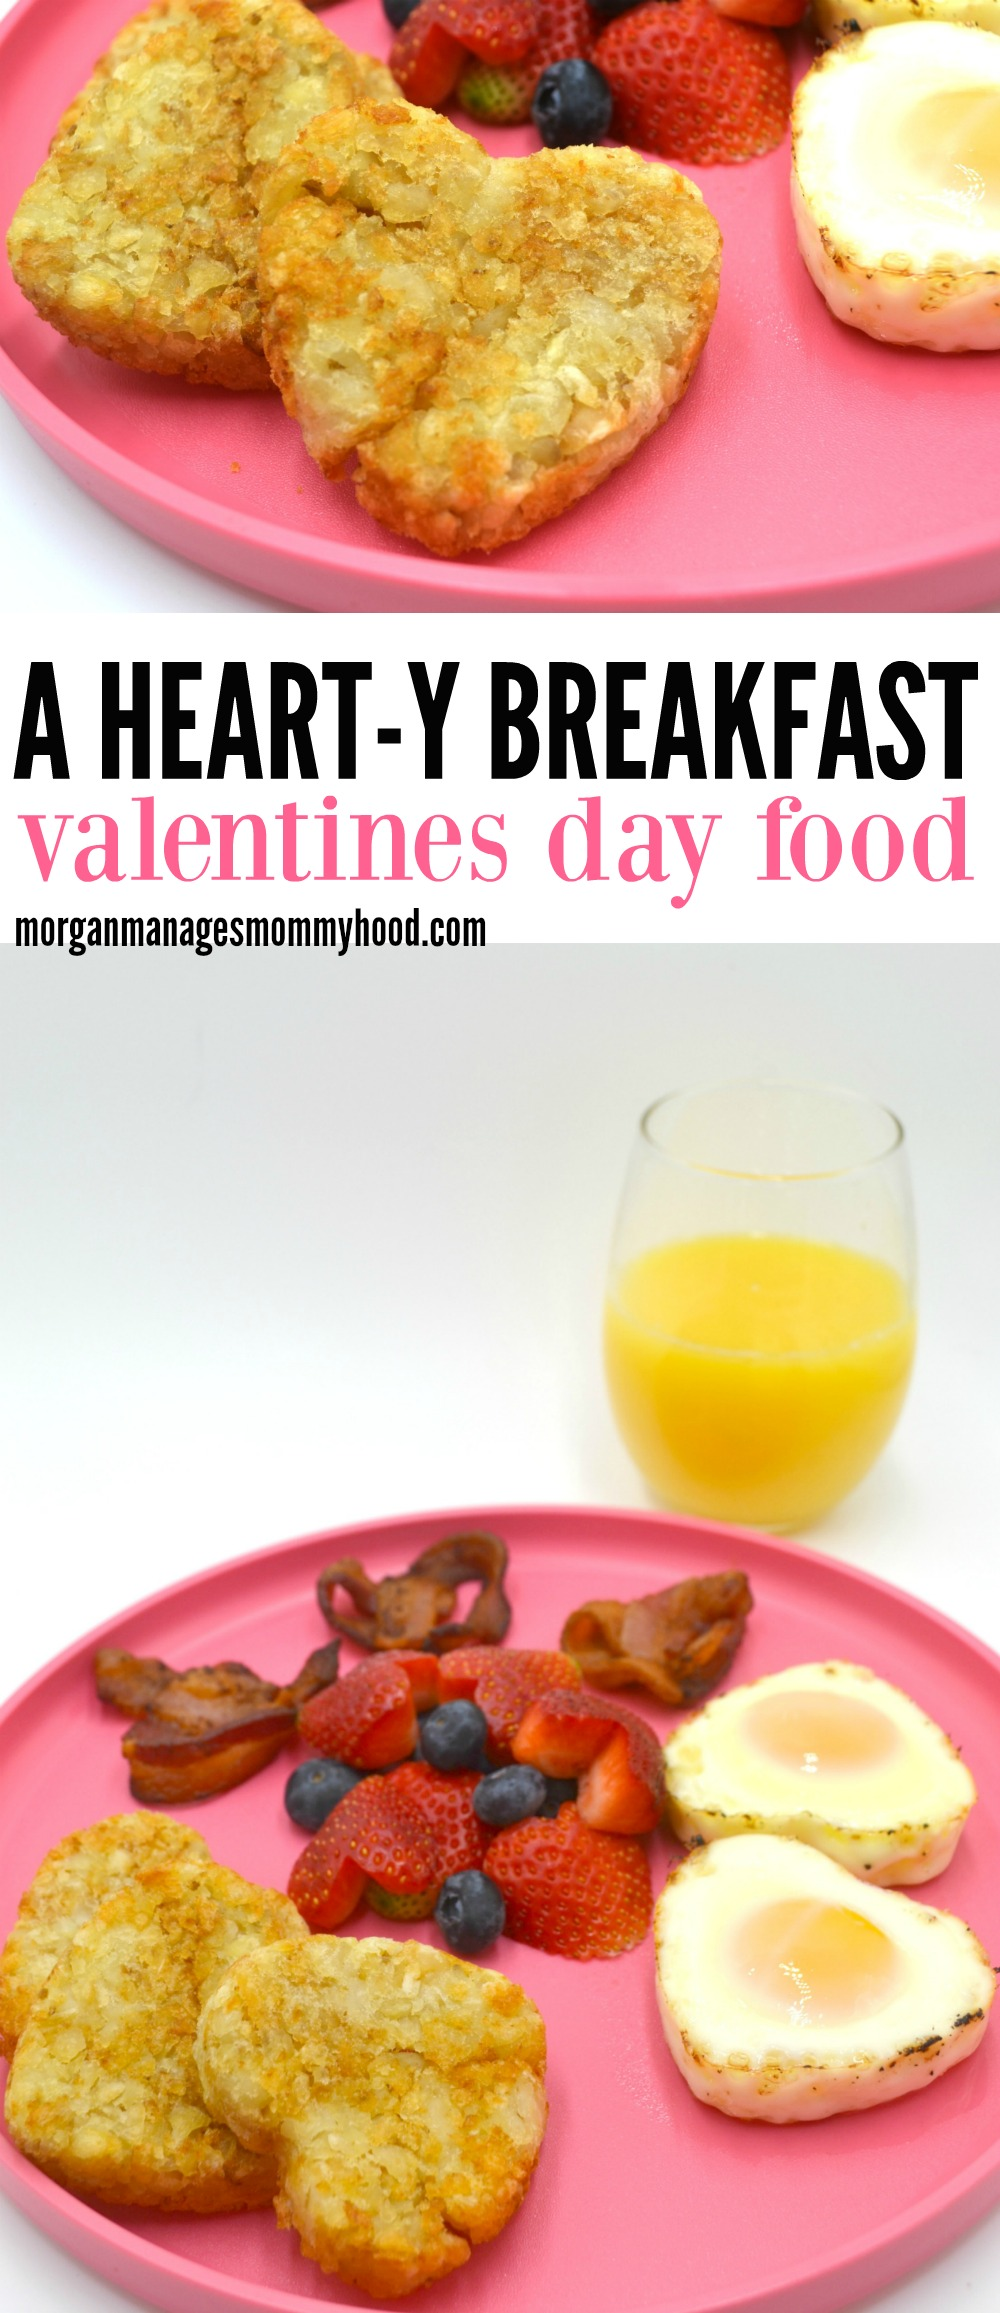 The perfect breakfast Valentines Day food - a HEART-y breakfast made with lots of heart! This valentine's day breakfast is the perfect way to show you care without  the work. #valentinesday #funfood #funkidfood